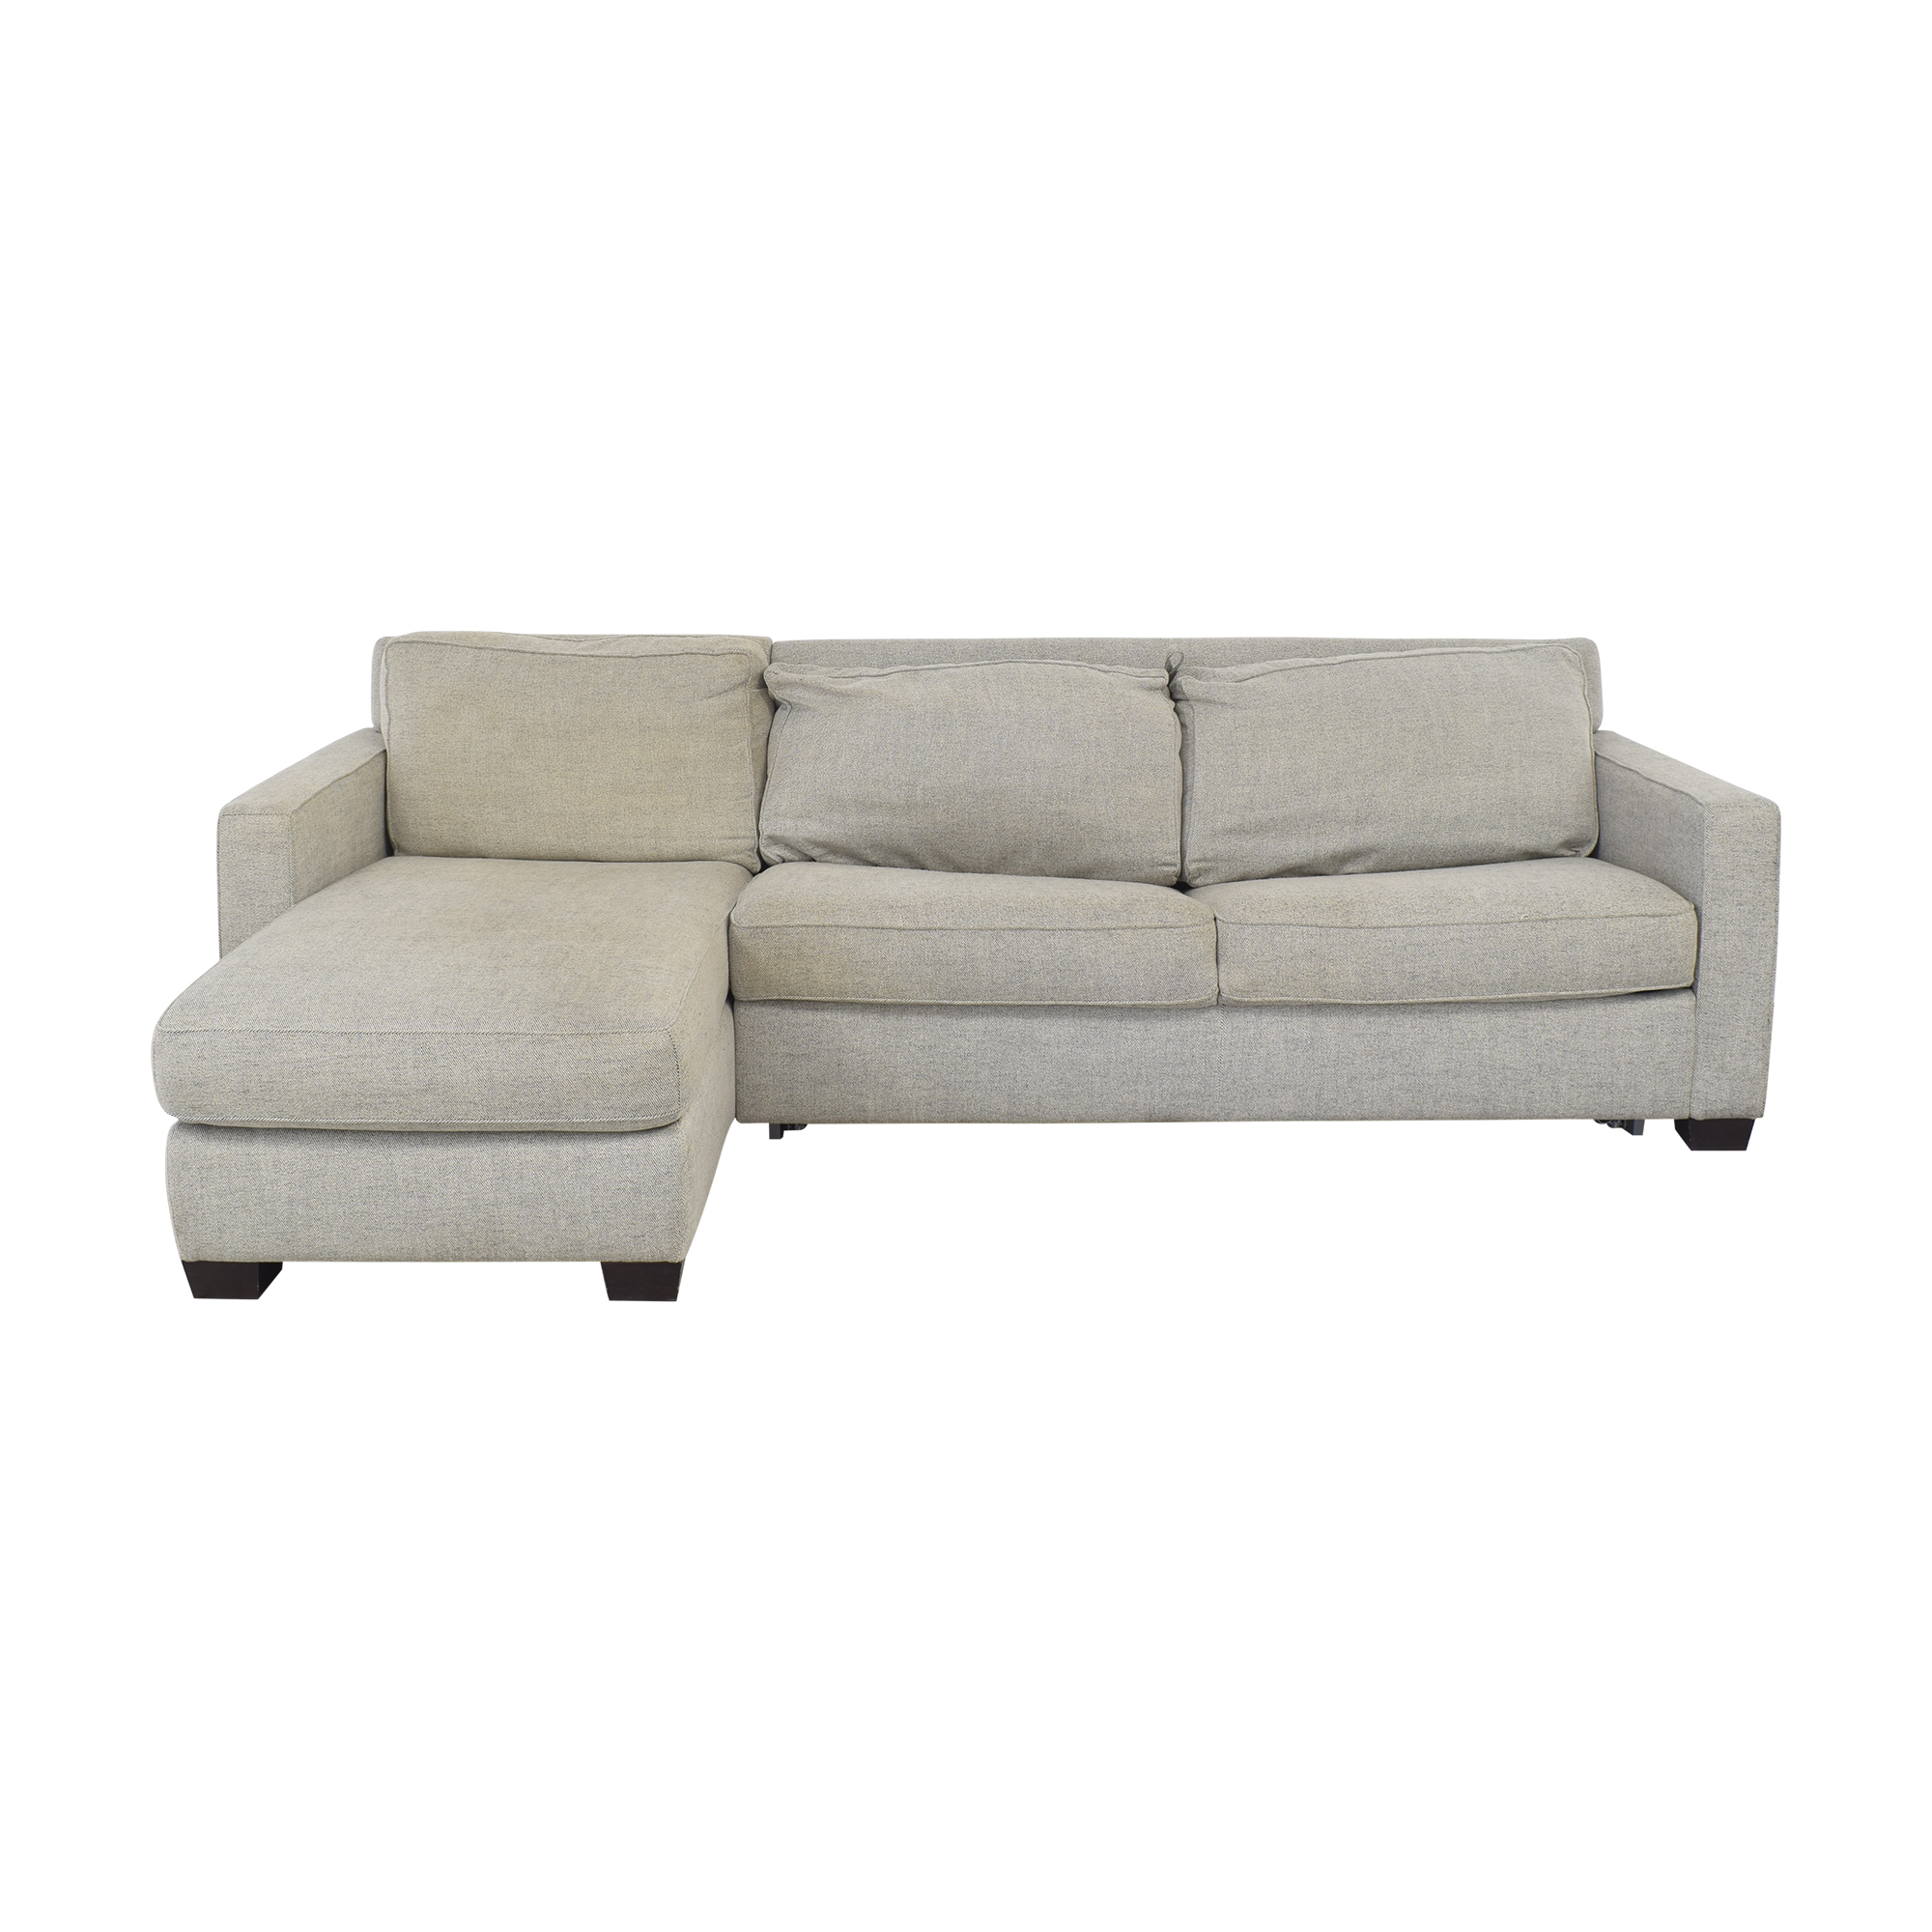 West Elm West Elm Henry 2-Piece Full Sleeper Storage Sofa discount